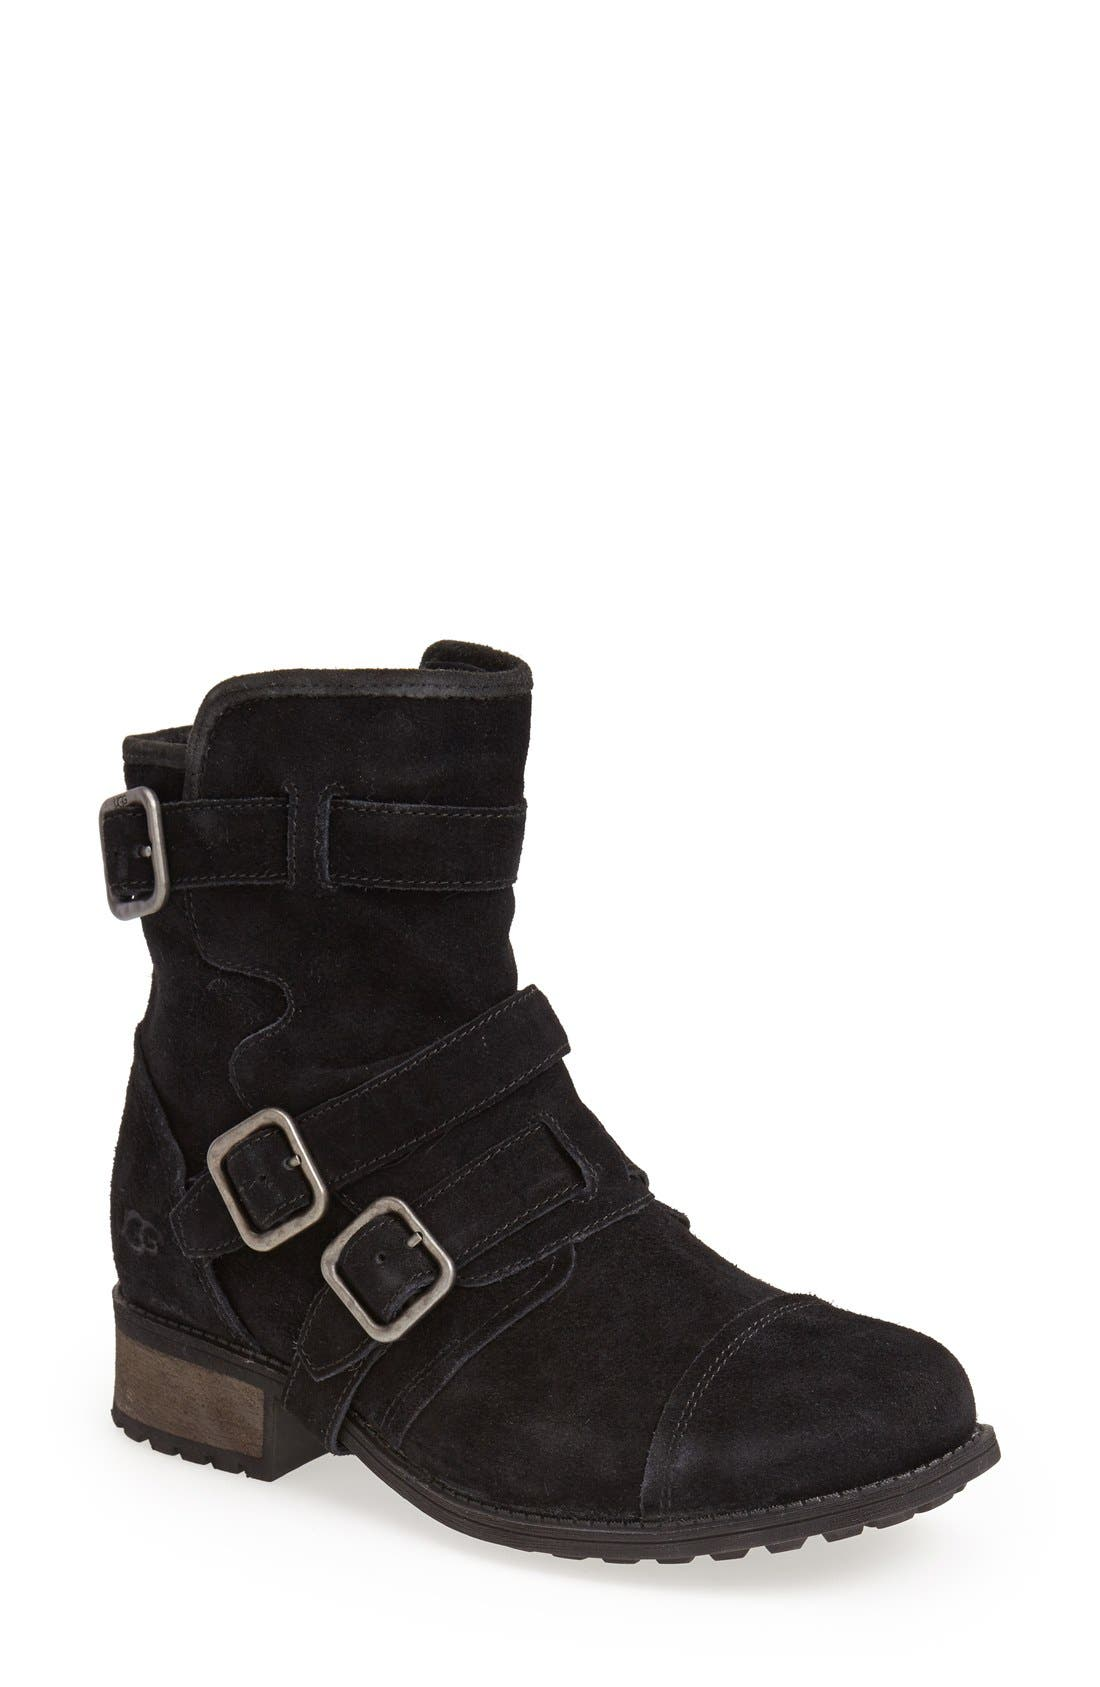 Alternate Image 1 Selected - UGG® Australia 'Finney' Suede Moto Boot (Women)